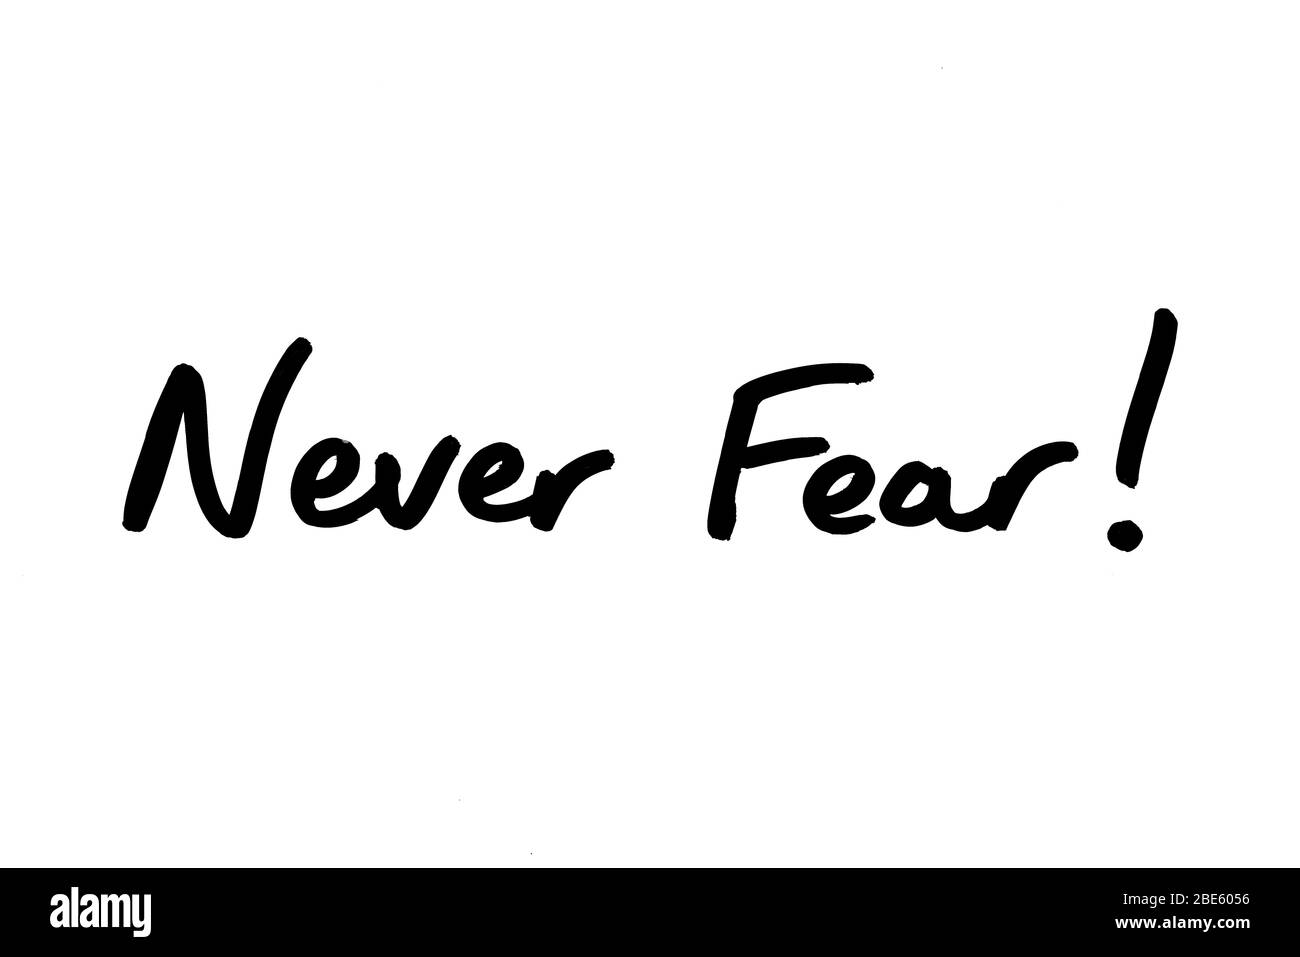 Never Fear! handwritten on a white background. Stock Photo